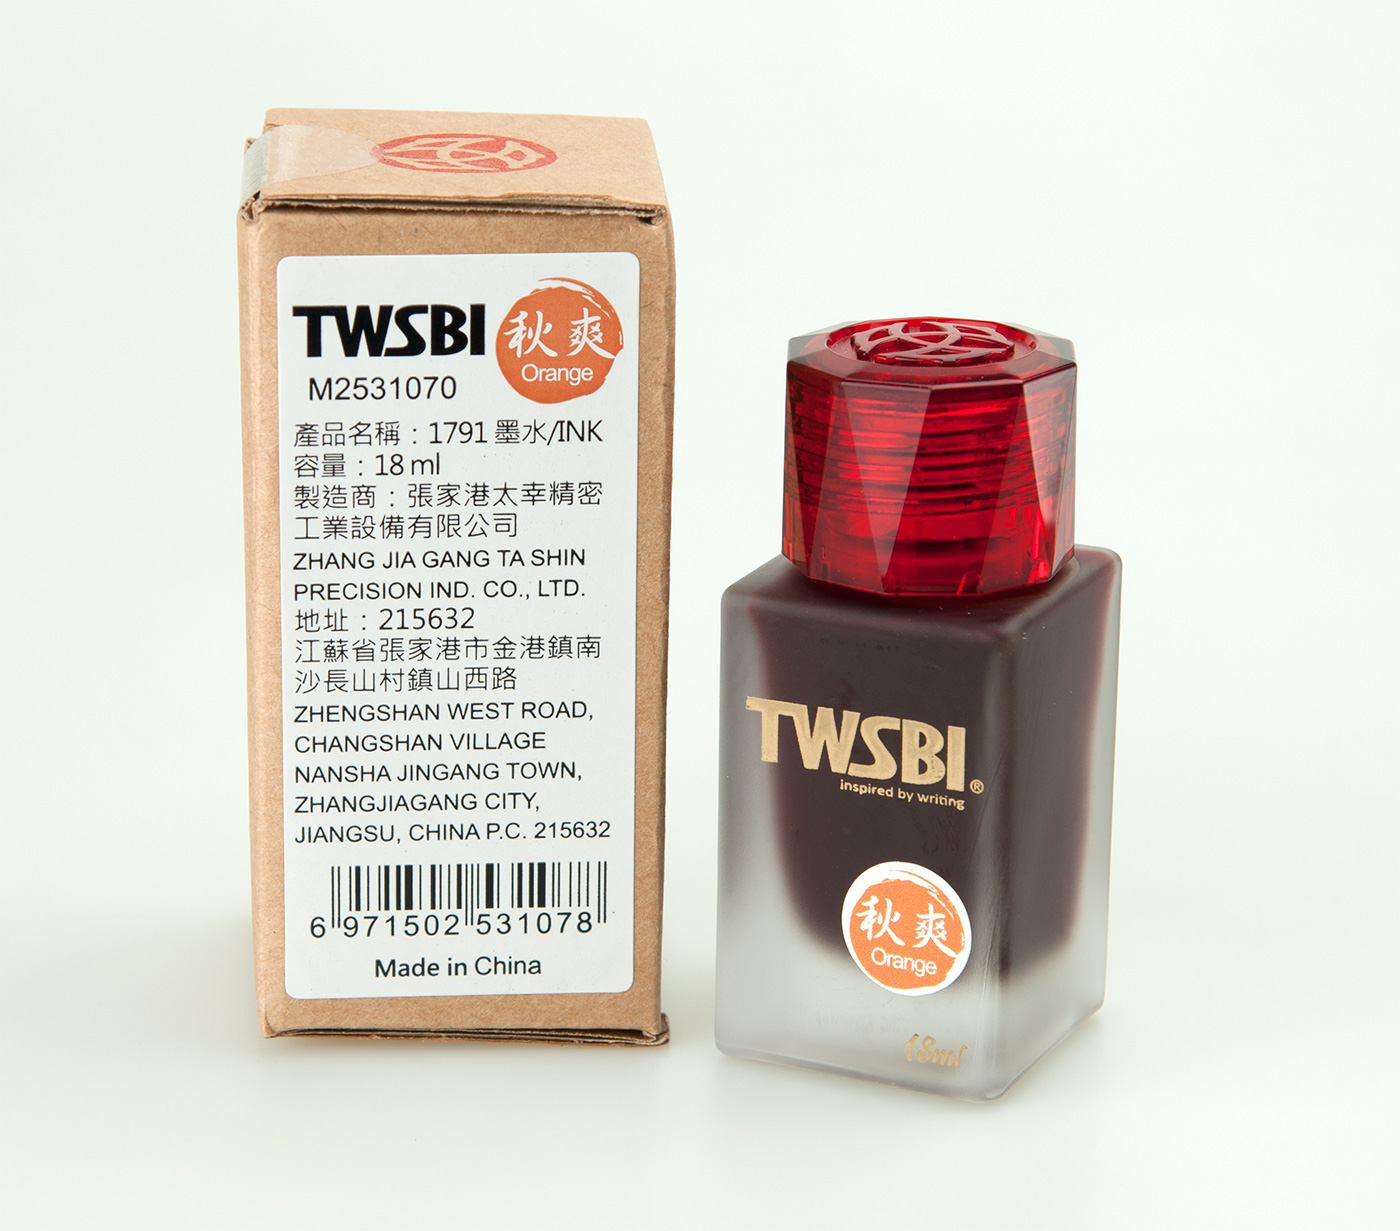 TWSBI 1791 Orange 18ml